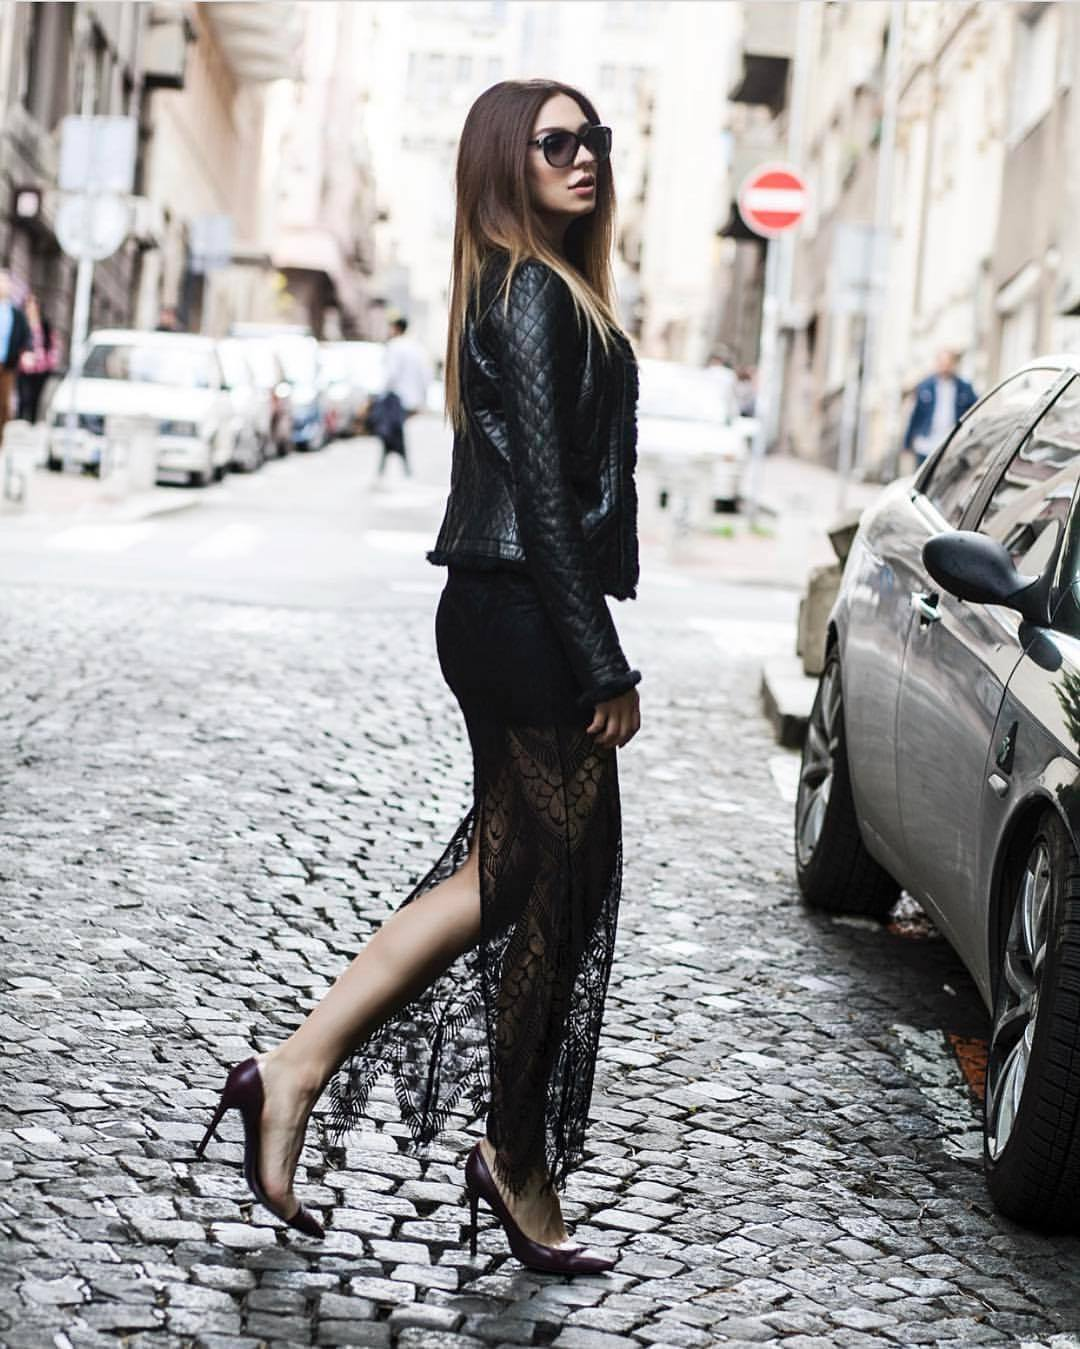 20196443_10155393529298971_848390287_o Women All Black Outfits - 20 Chic Ways to Wear All Black